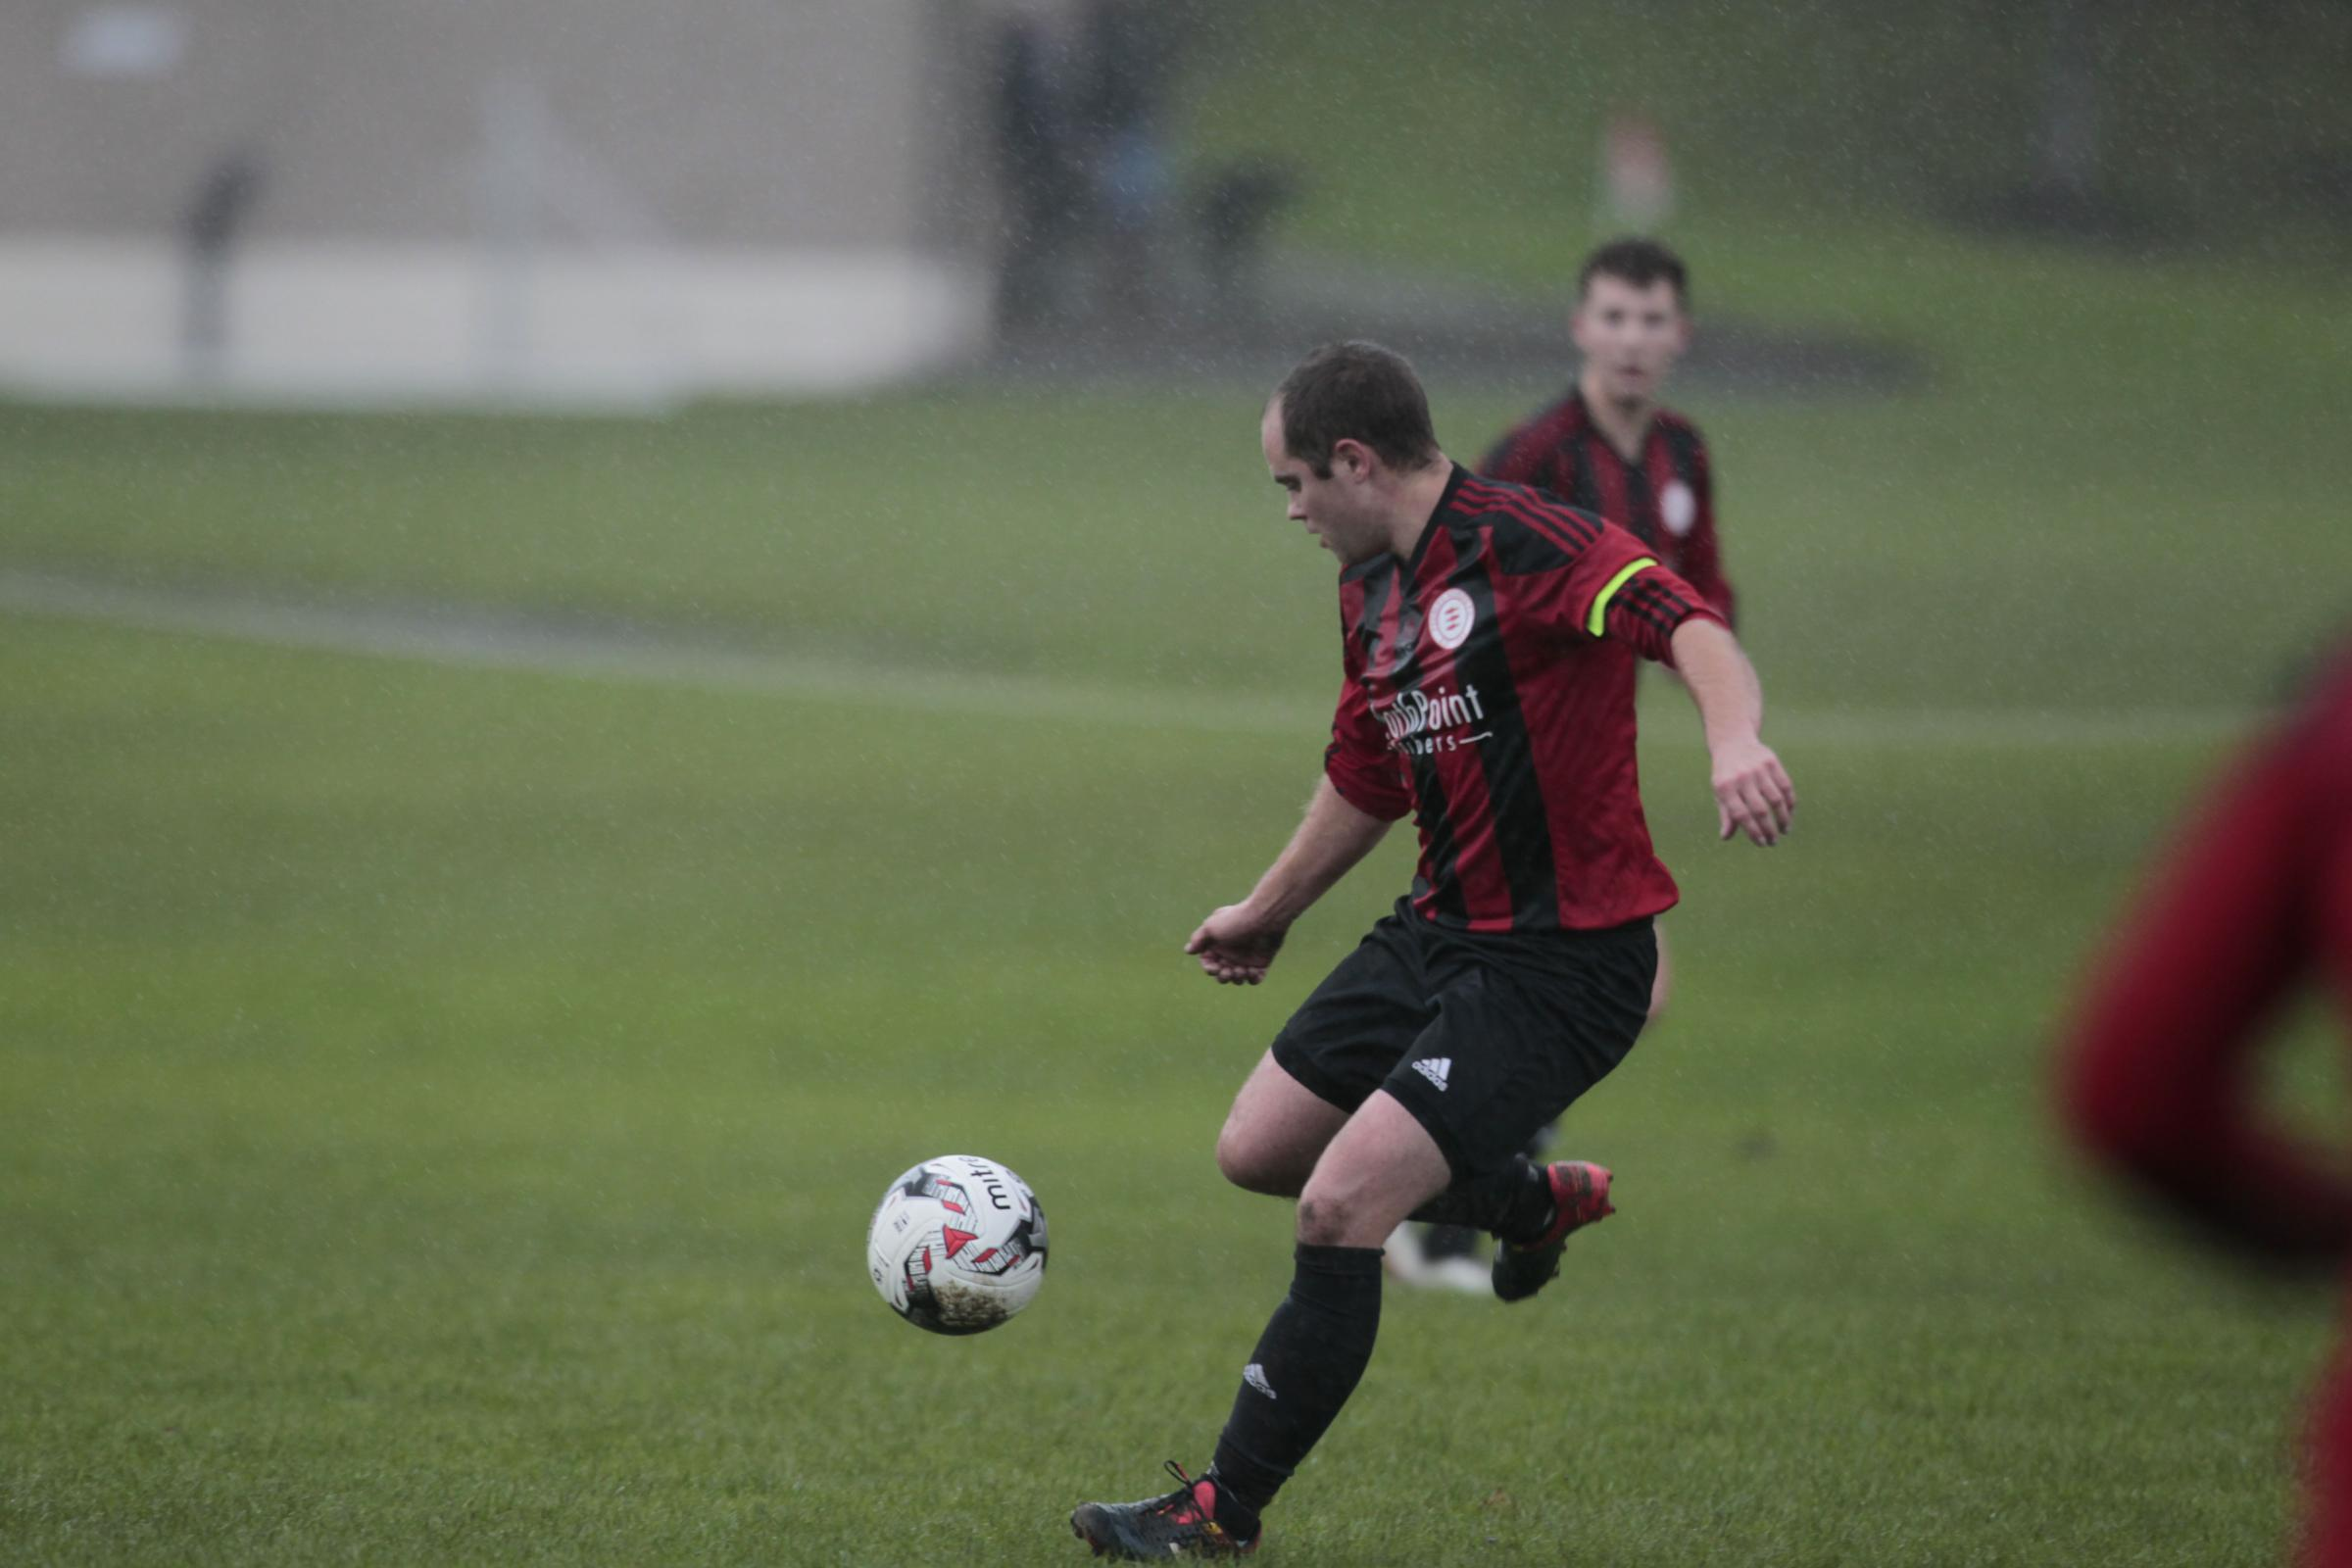 Alan McMath in action for Peebles Rovers